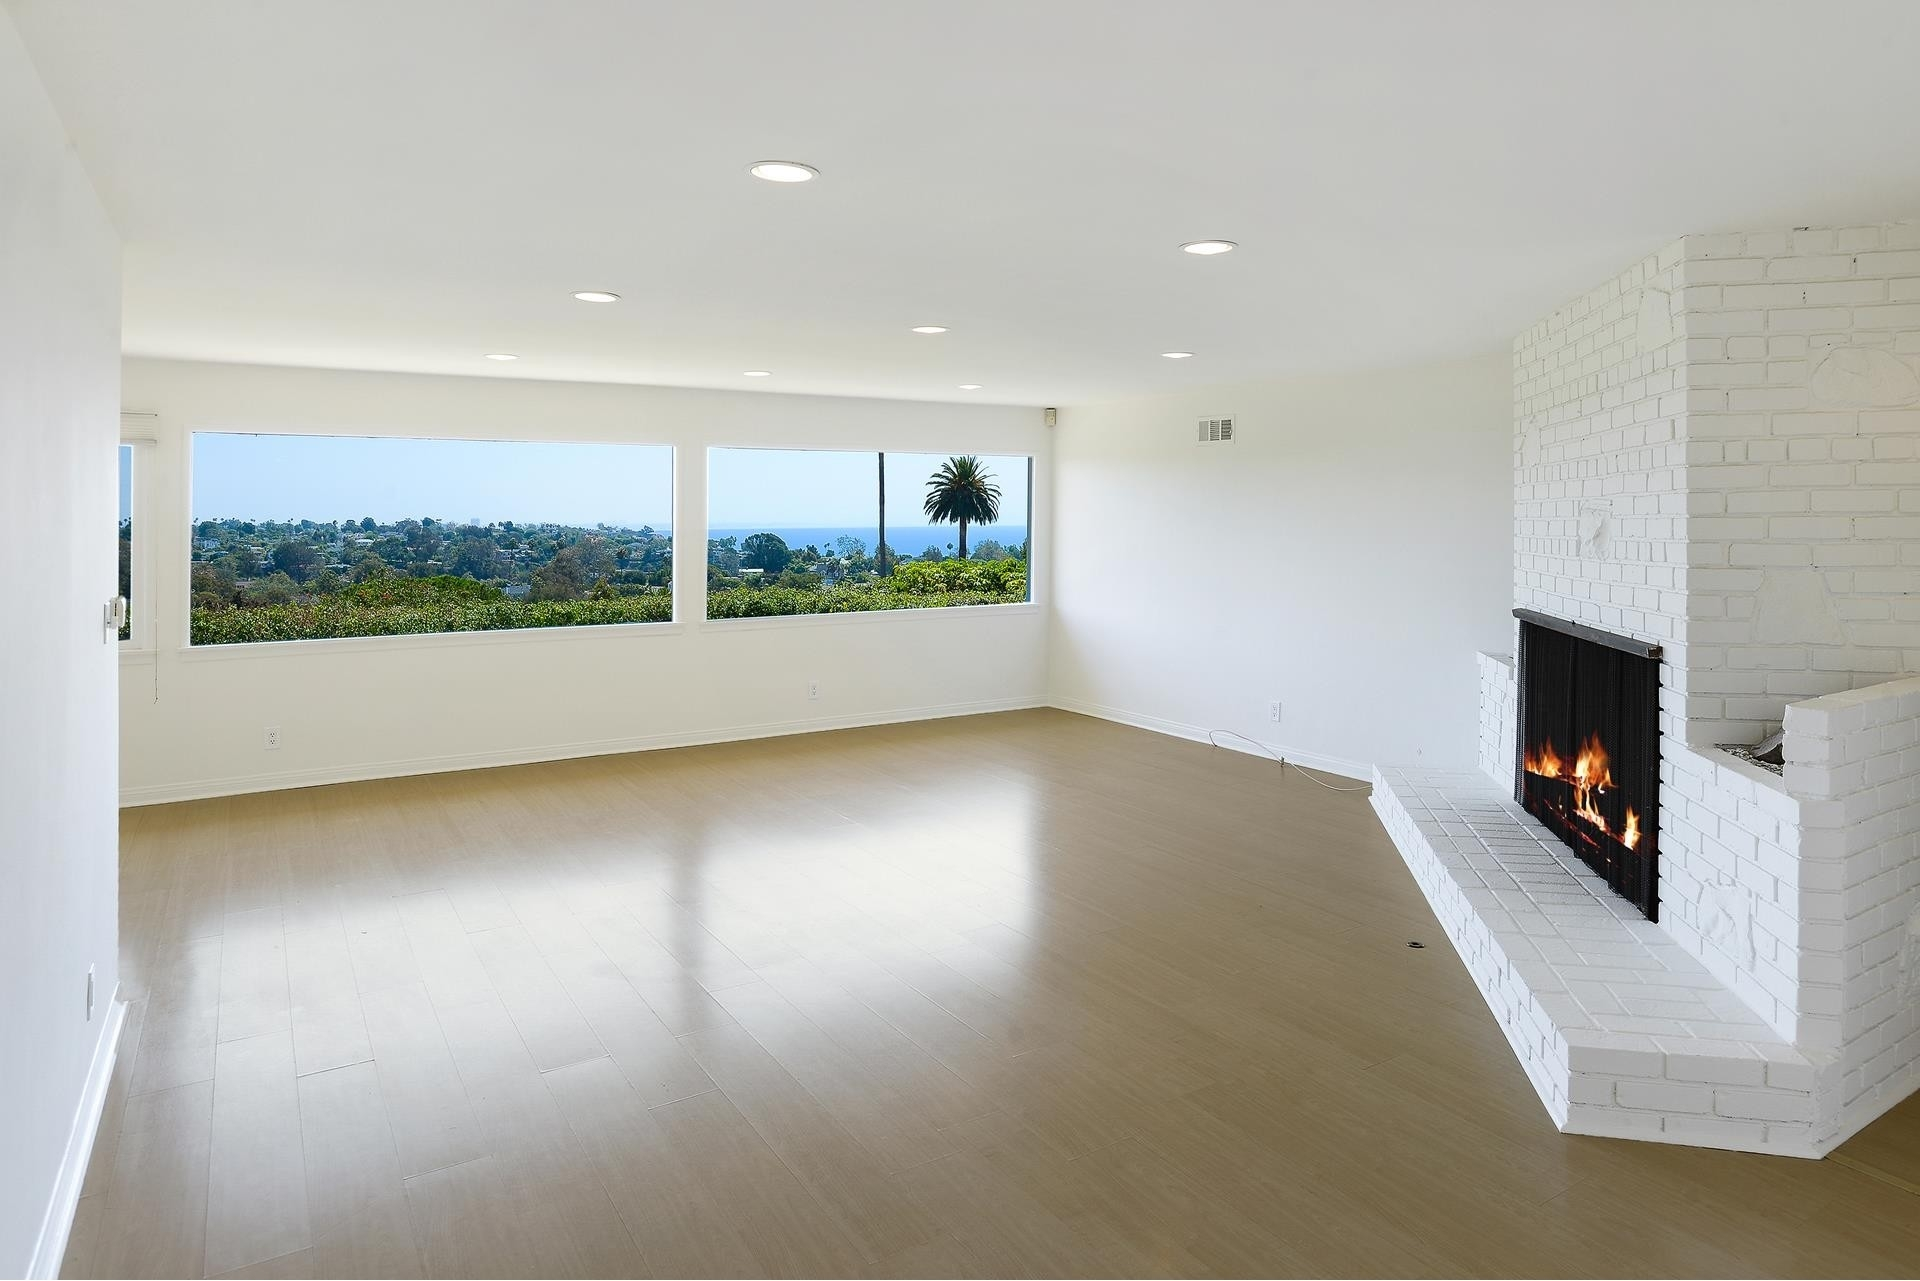 5. Rentals at Pacific Palisades